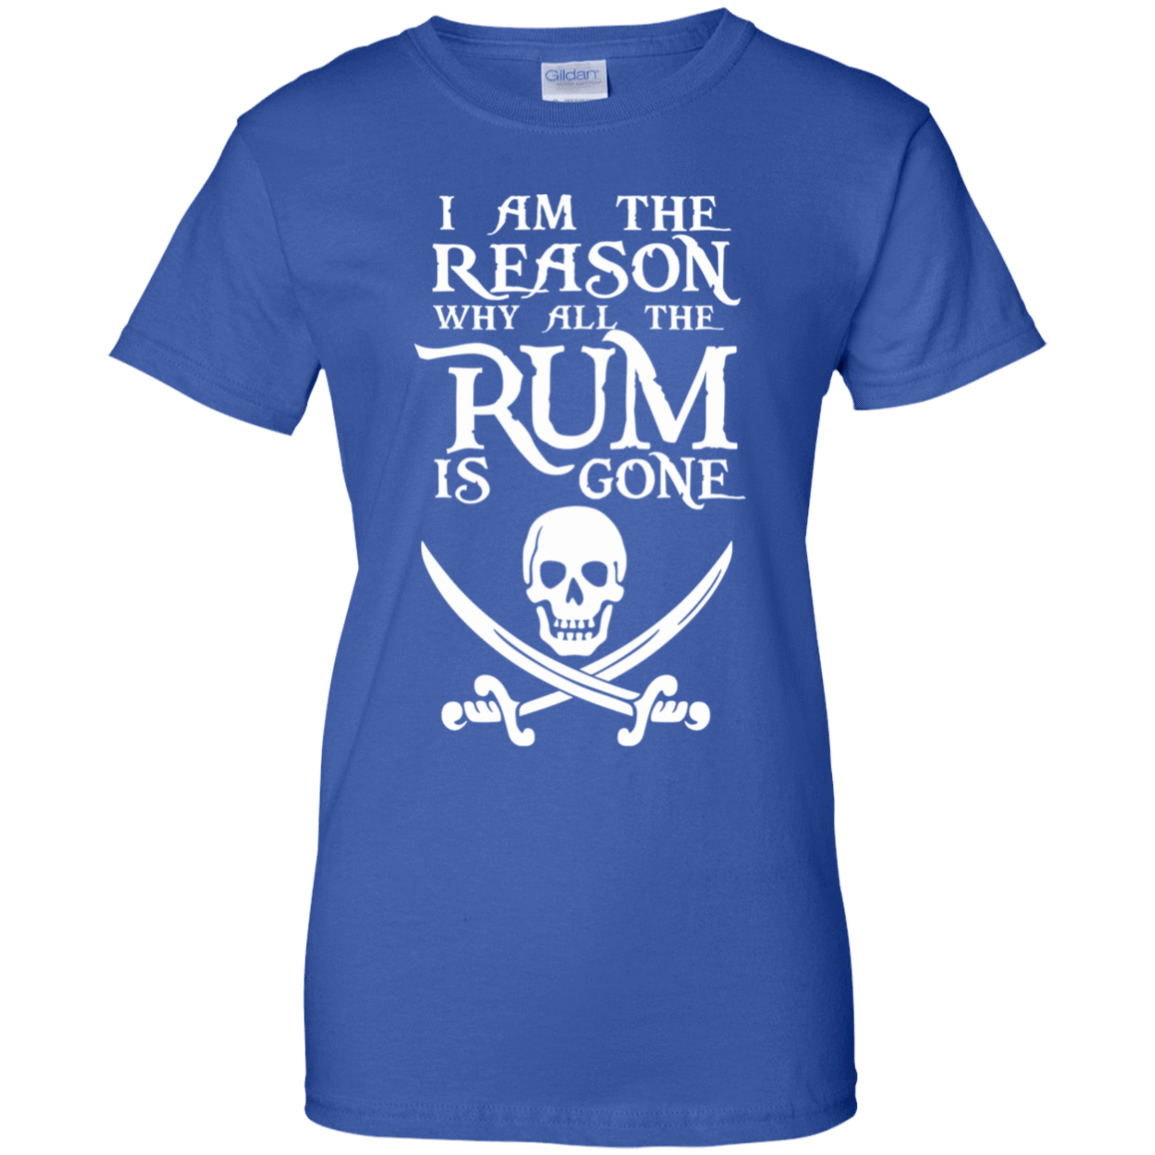 I Am The Reason Why All The Rum Is Gone 939-9264-73425466-44807 - Tee Ript